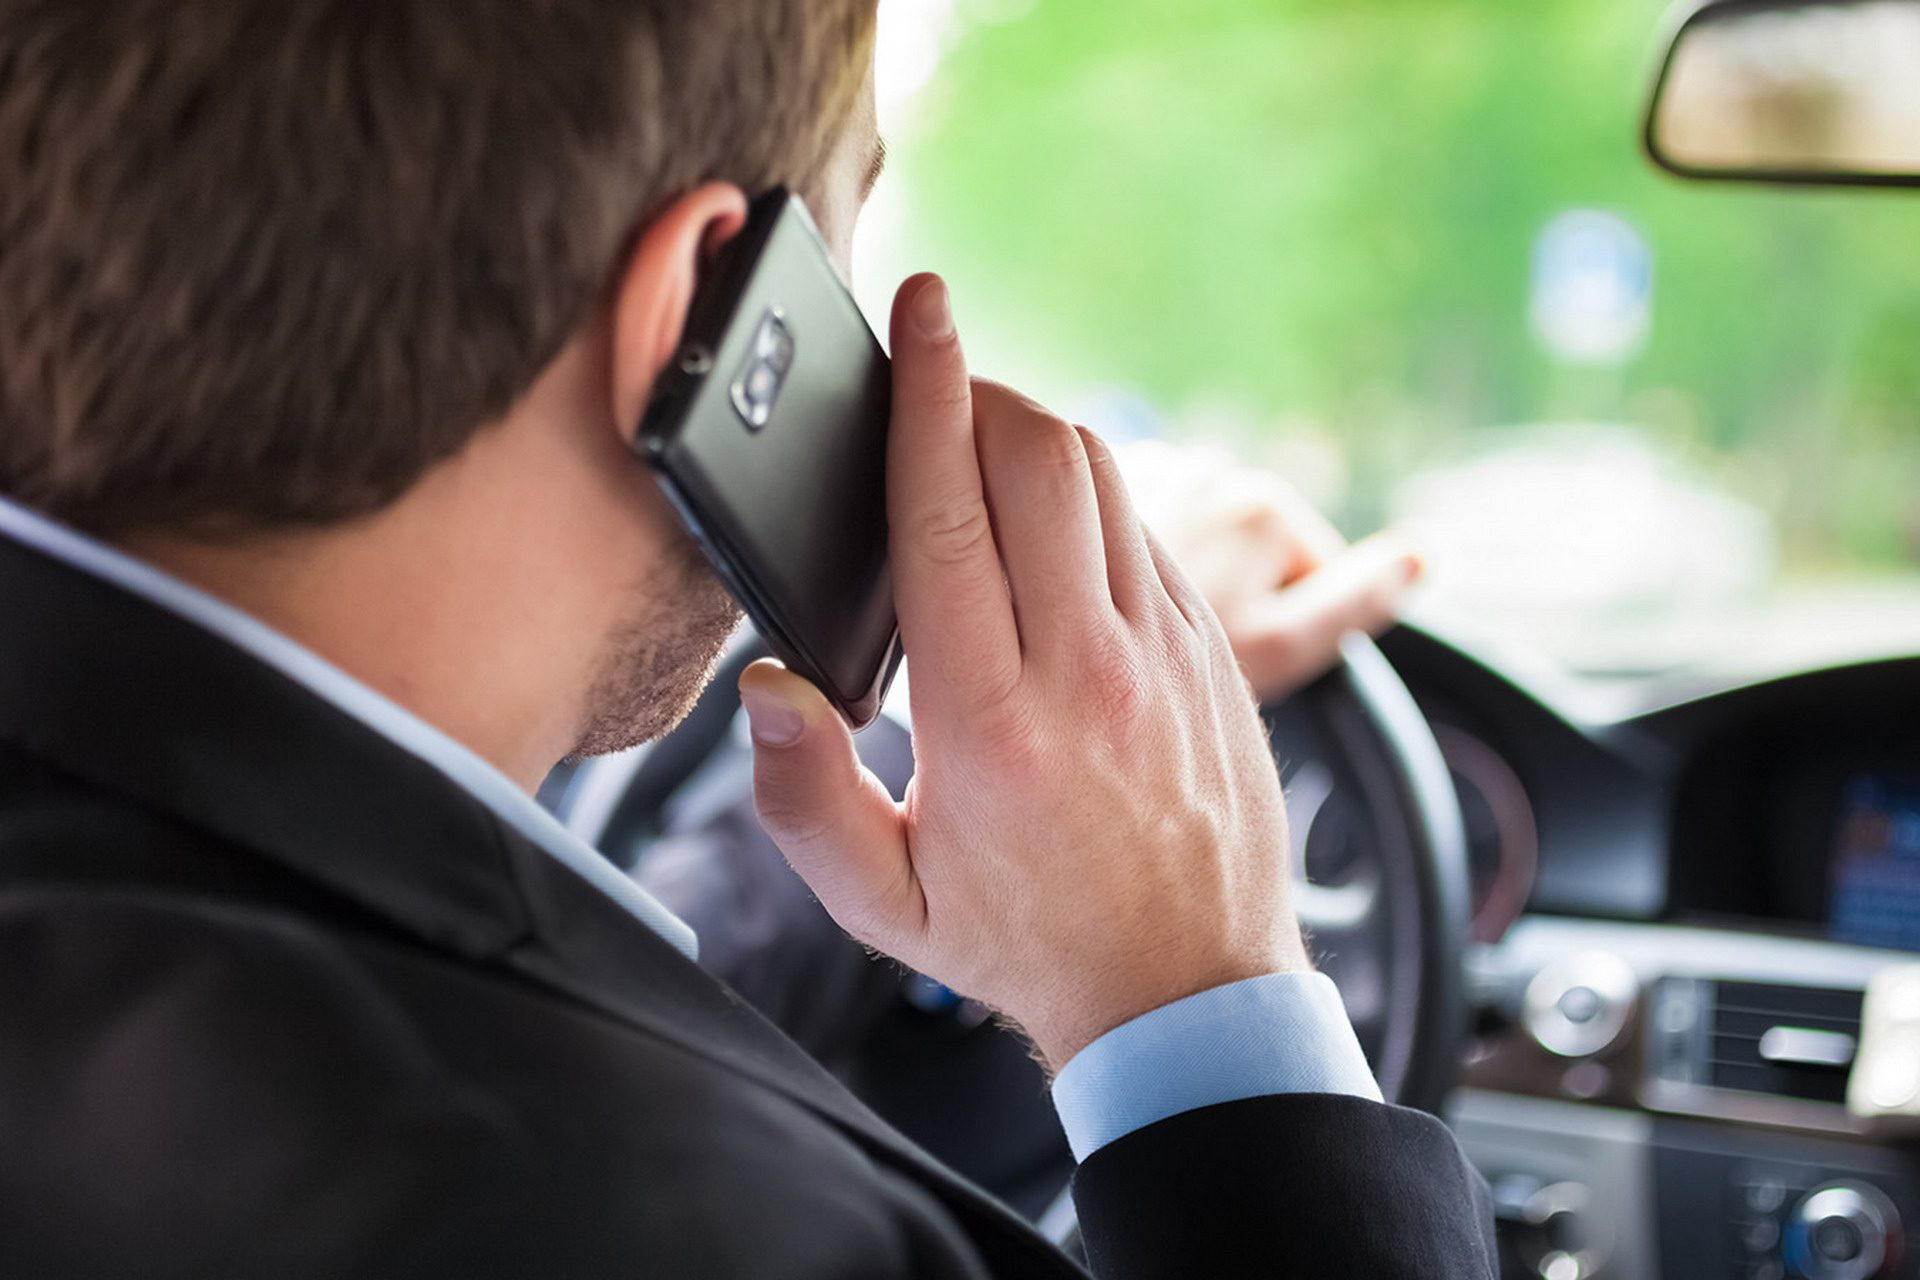 Uso del cellulare in auto, principale causa di incidenti